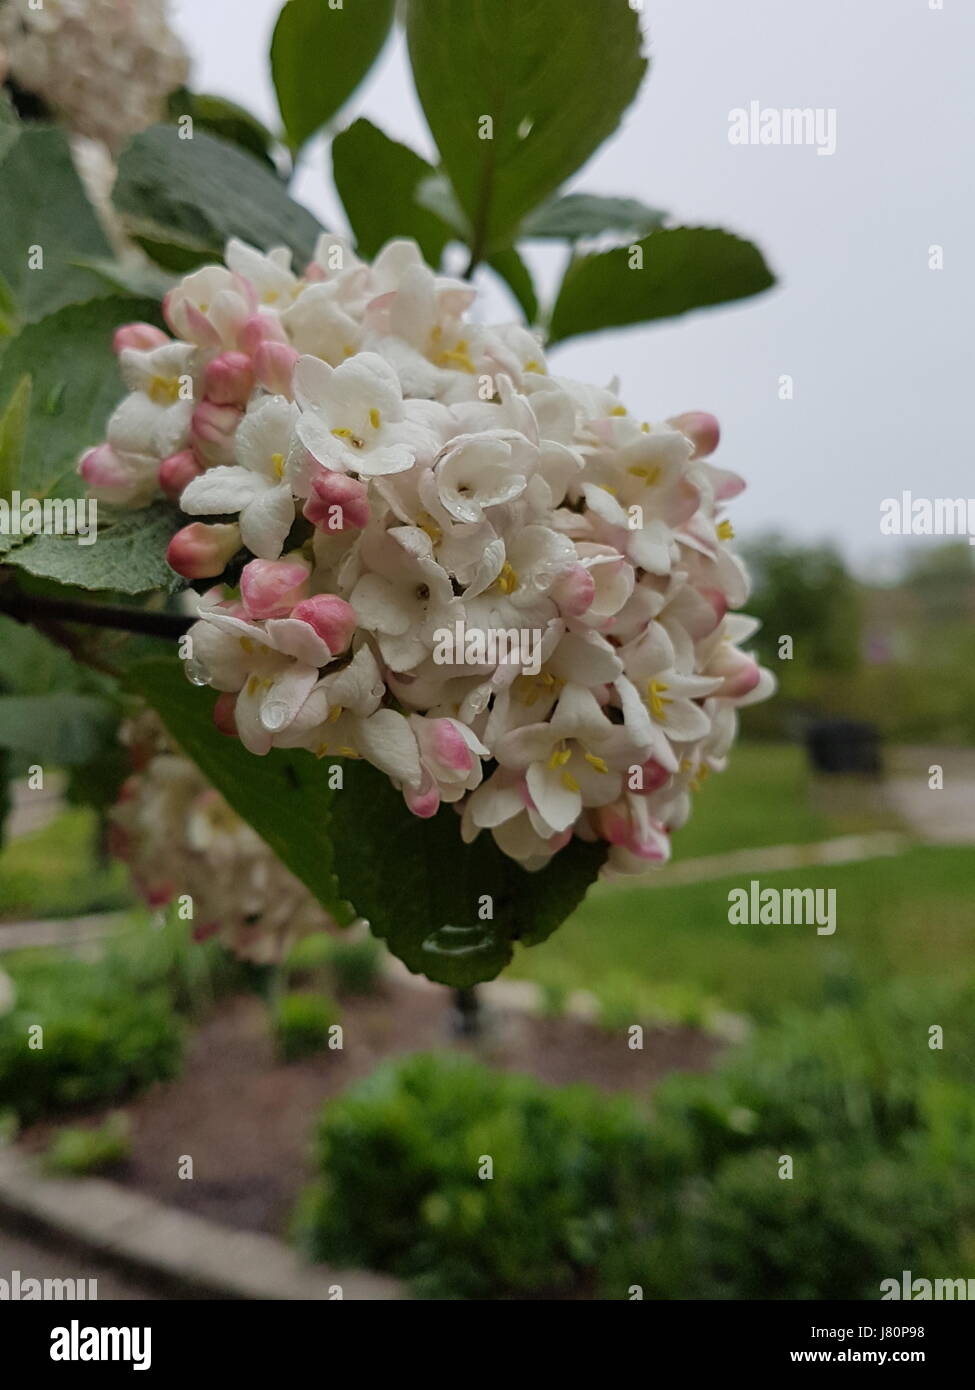 Pink and white flowers blooming with fresh rain droplets on it during spring  weather - Stock Image